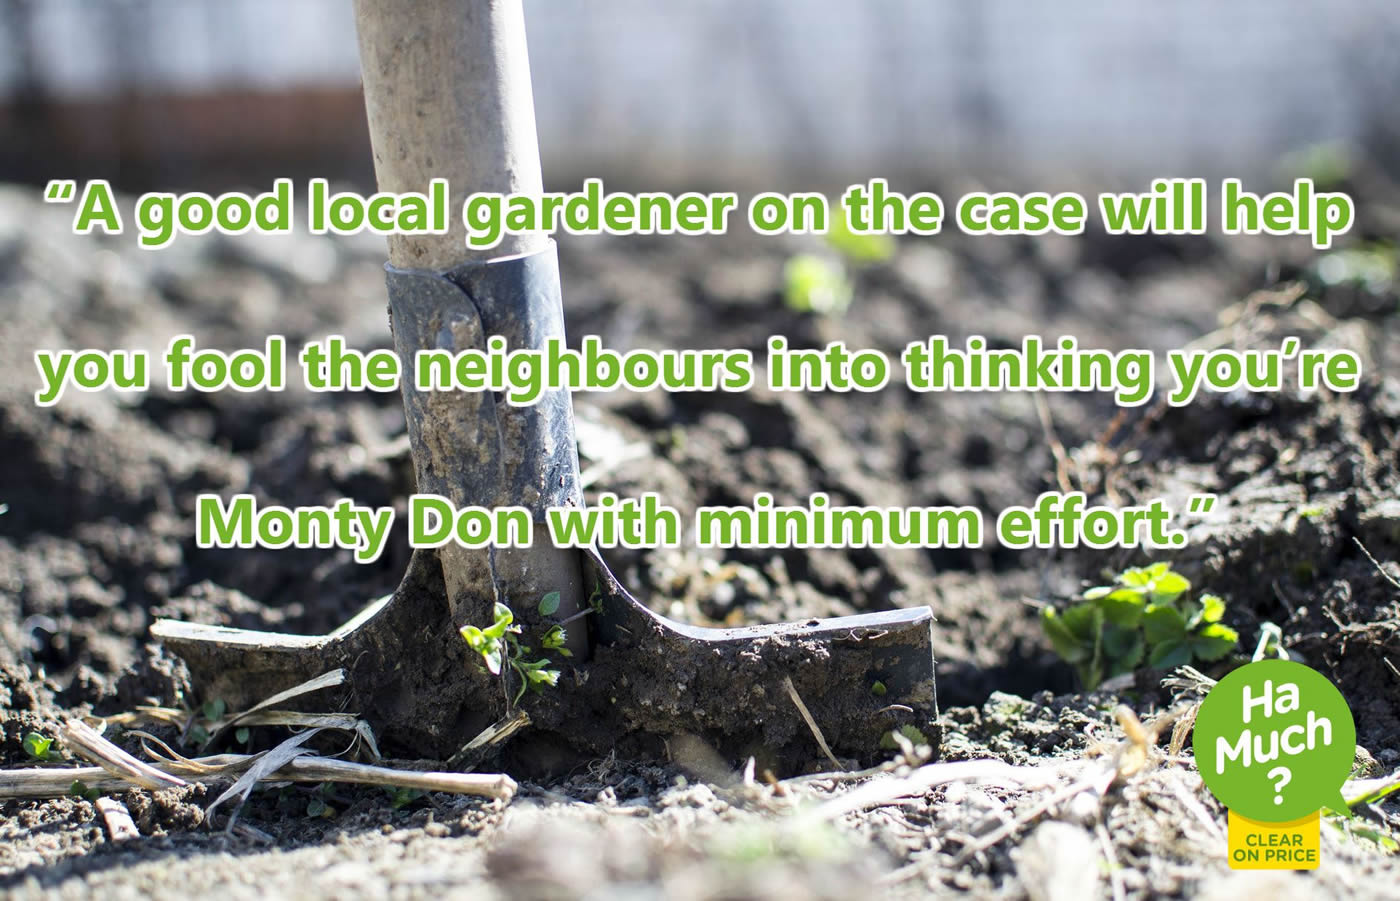 A good local gardener on the case will help you fool the neighbour into thinking you're Monty Don with minimum effort